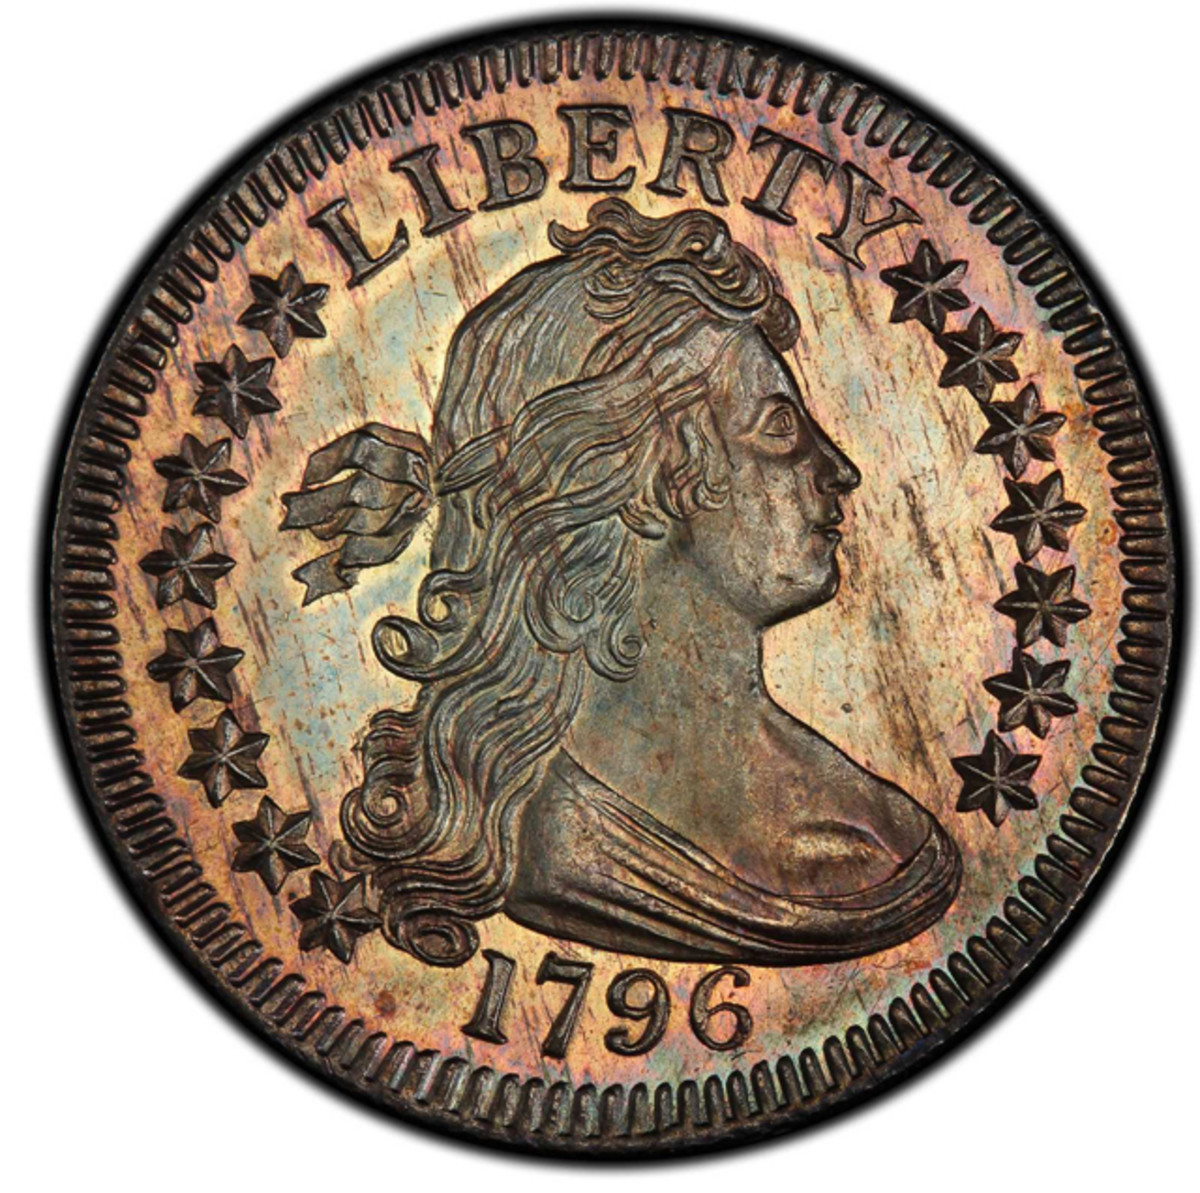 This 1796 Draped Bust quarter was sold for $1,527,500.